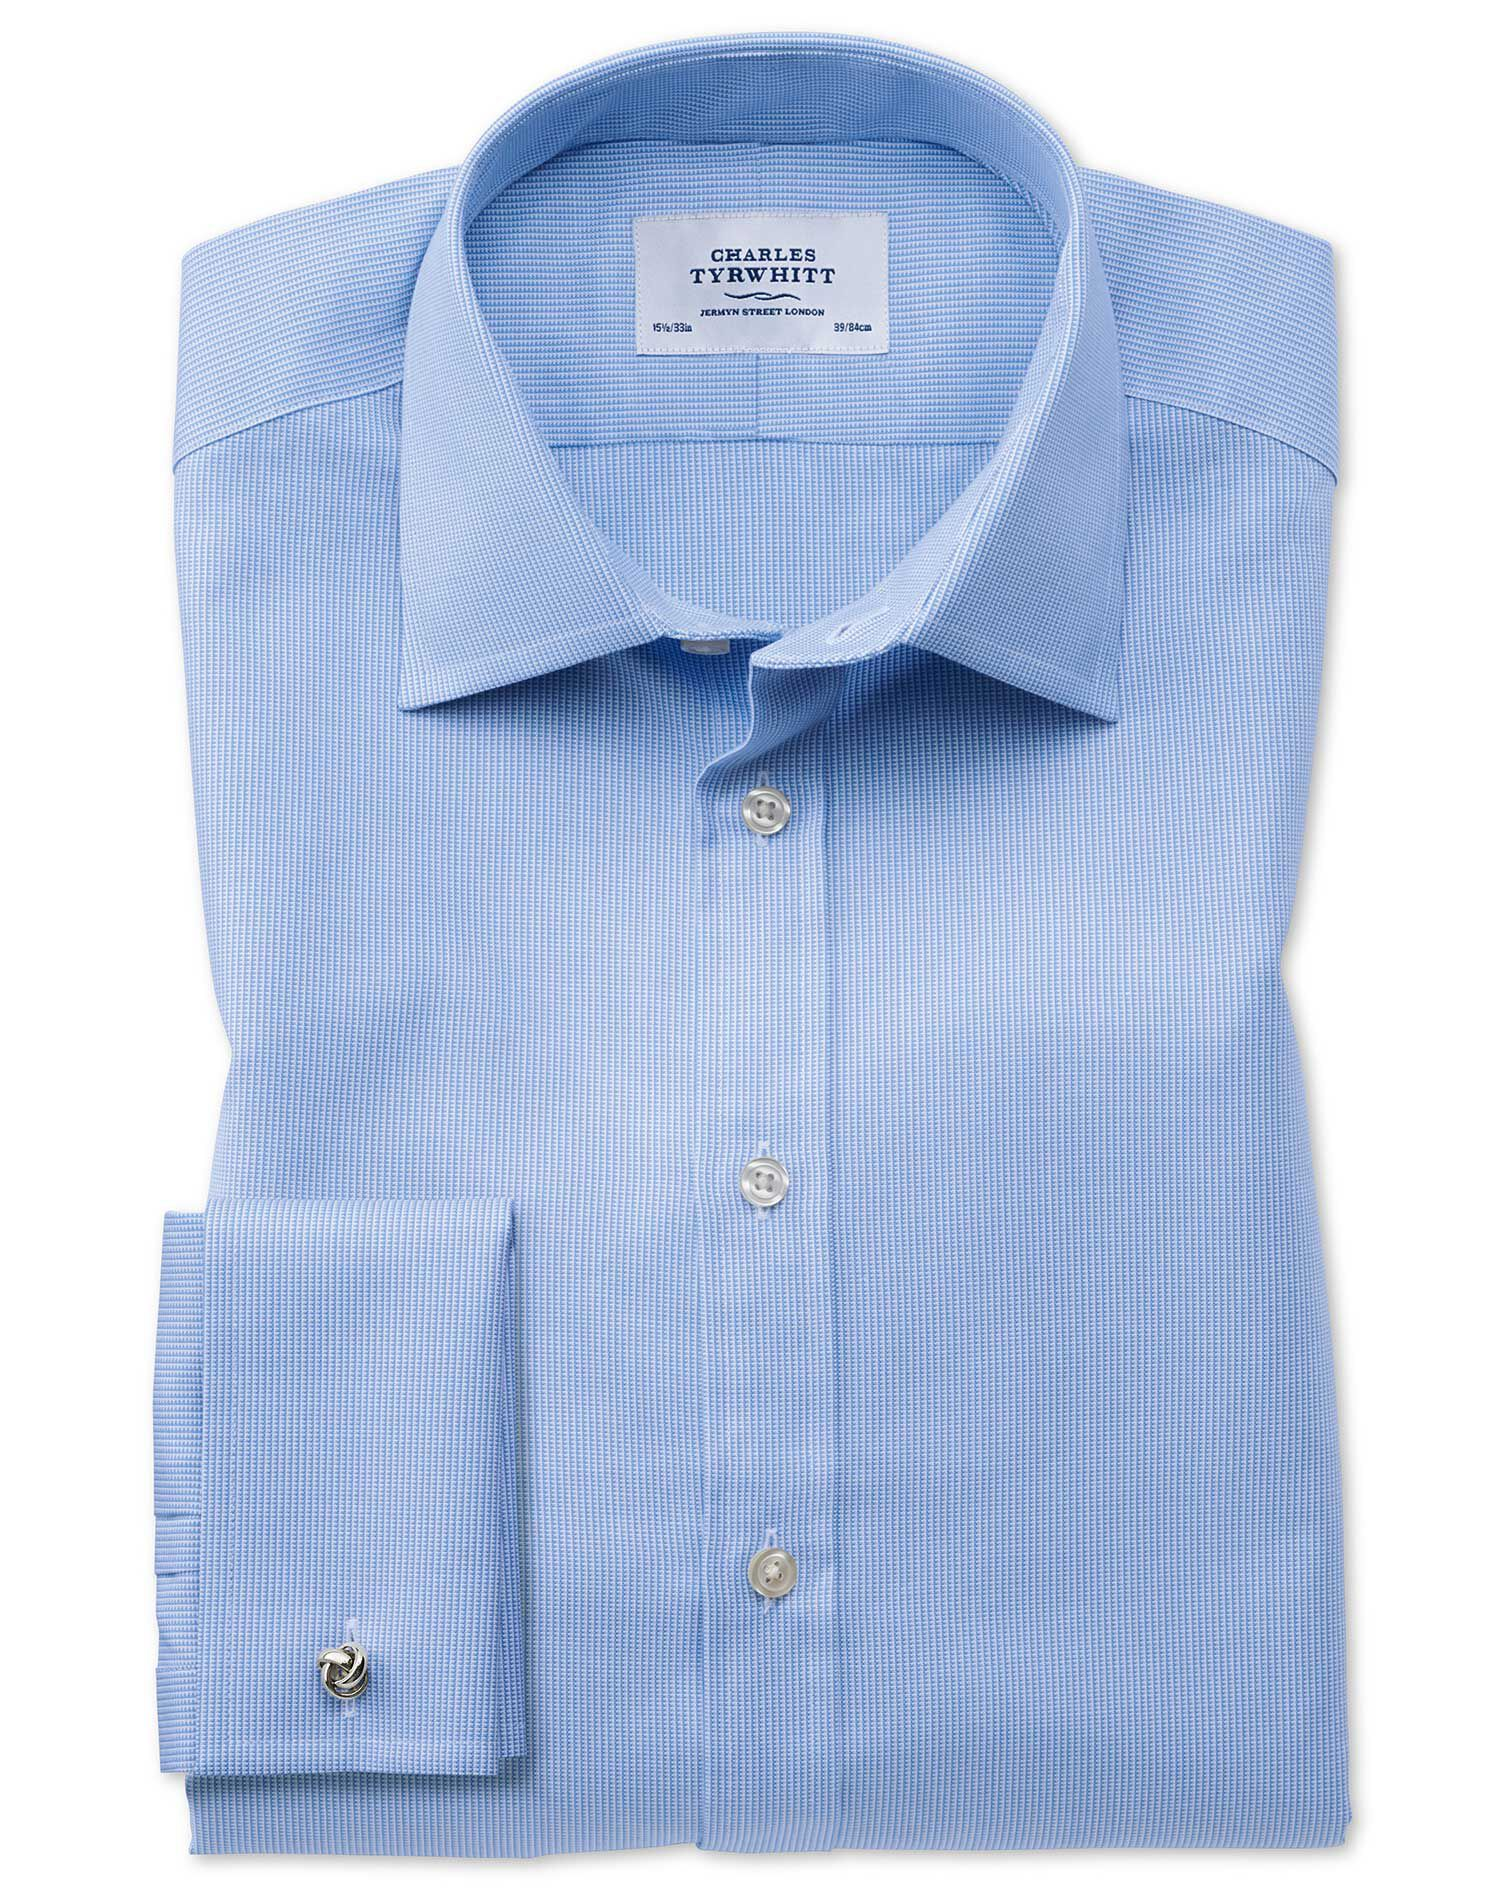 Classic Fit Oxford Sky Blue Cotton Formal Shirt Single Cuff Size 15.5/37 by Charles Tyrwhitt